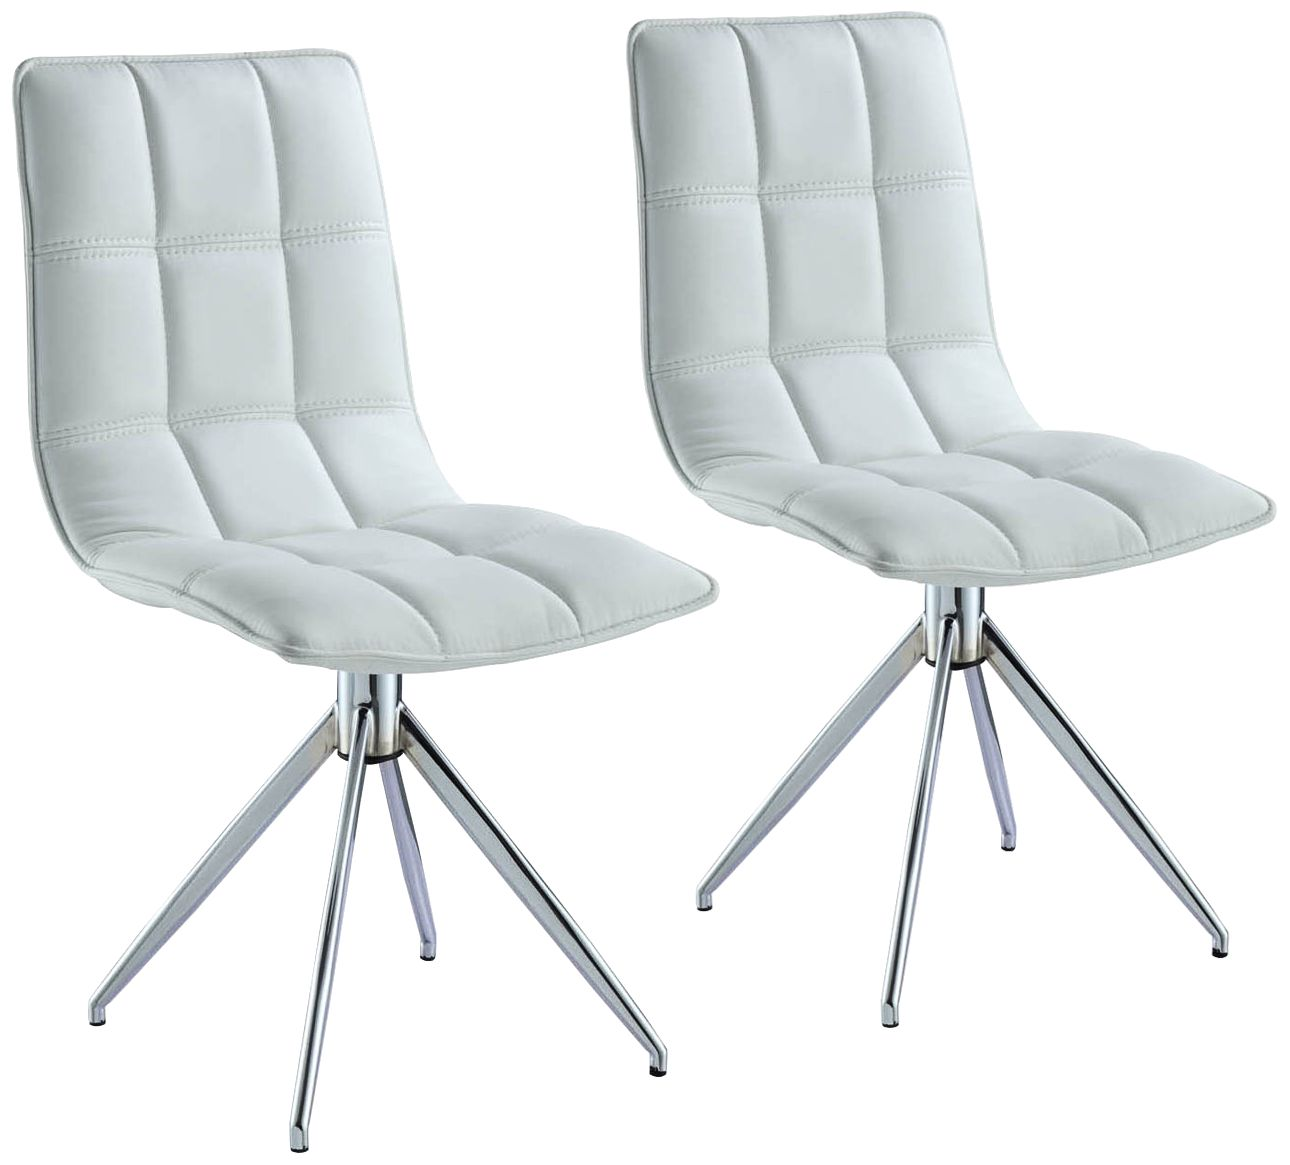 Apollo White Faux Leather Swivel Dining Chair Set of 2  sc 1 st  L&s Plus & Apollo White Faux Leather Swivel Dining Chair Set of 2 - #23A38 ...